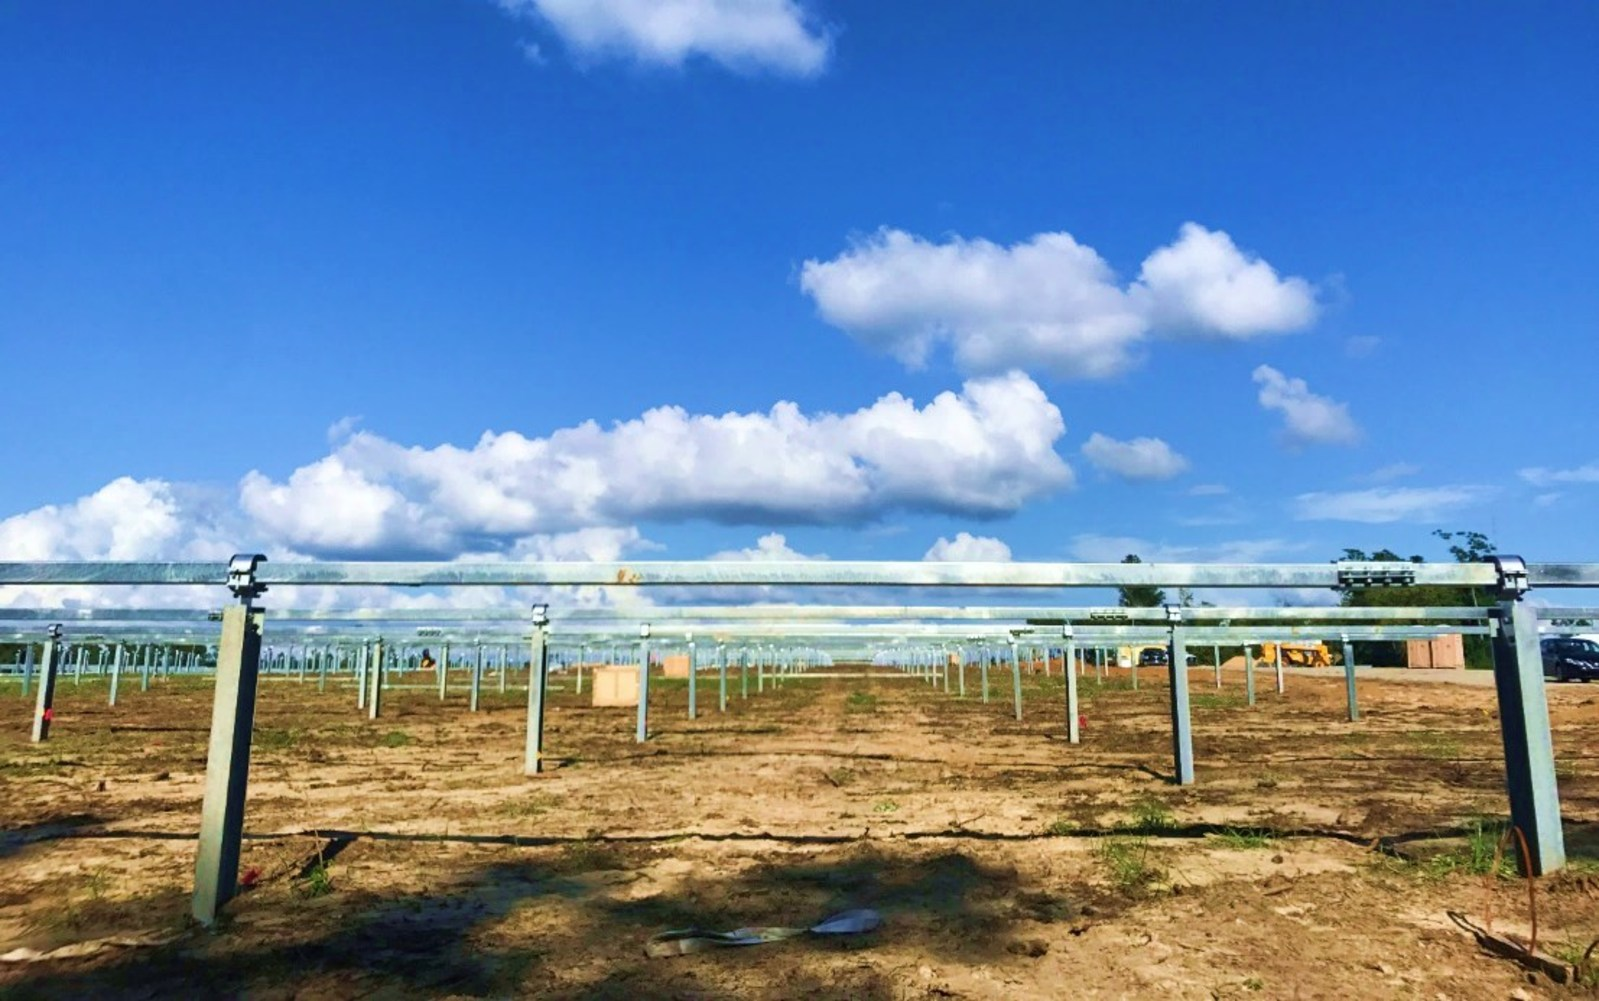 The first 3.1MW project, which will deploy Arctech Solar's single axis trackers, is already under construction. Image: Arctech Solar